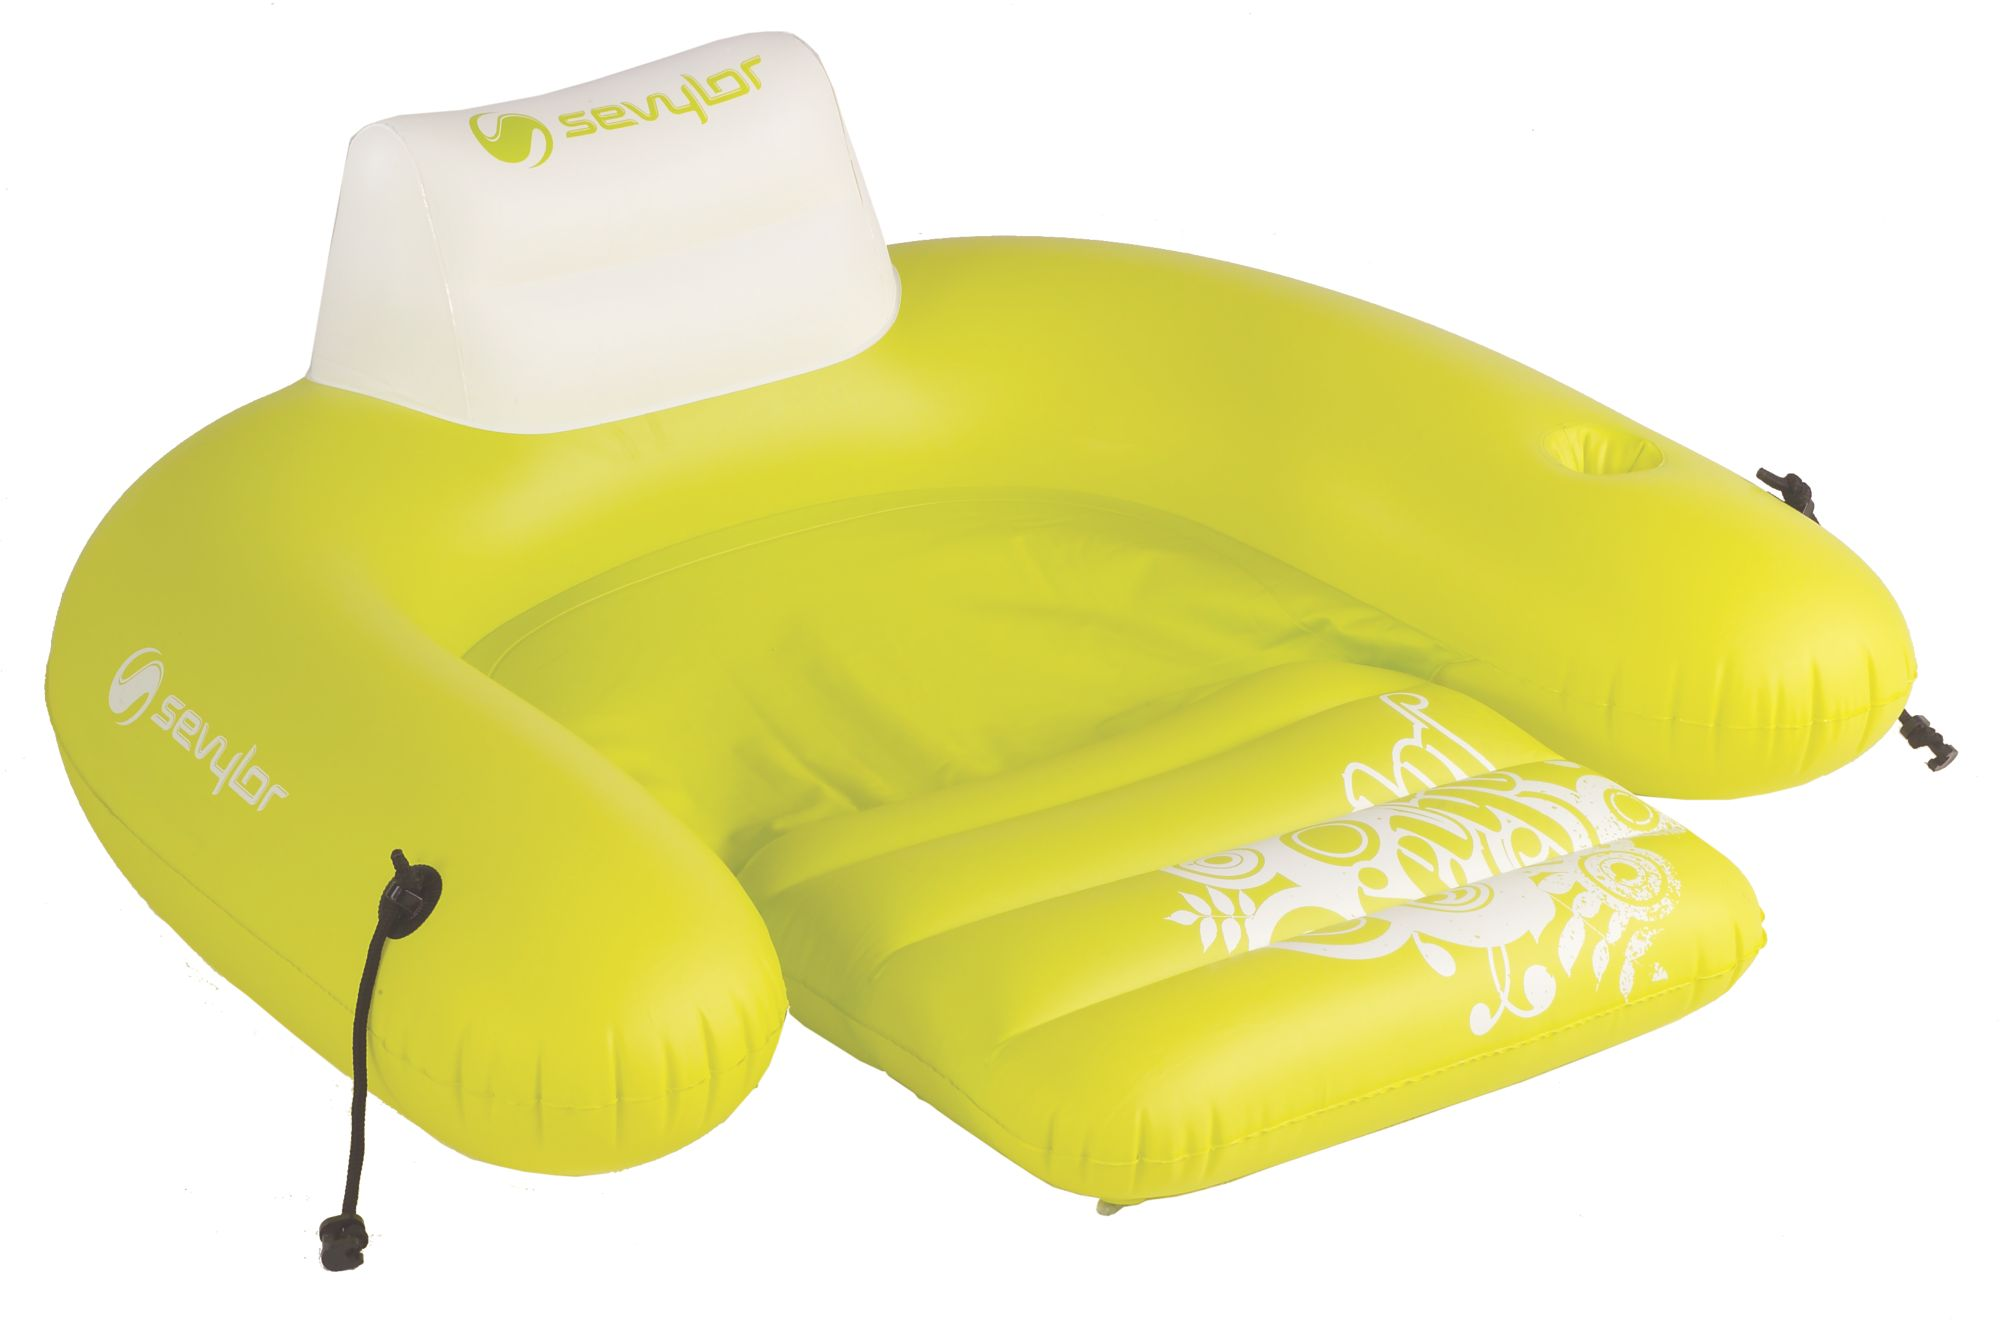 Floating Pool Chair Pool Floats